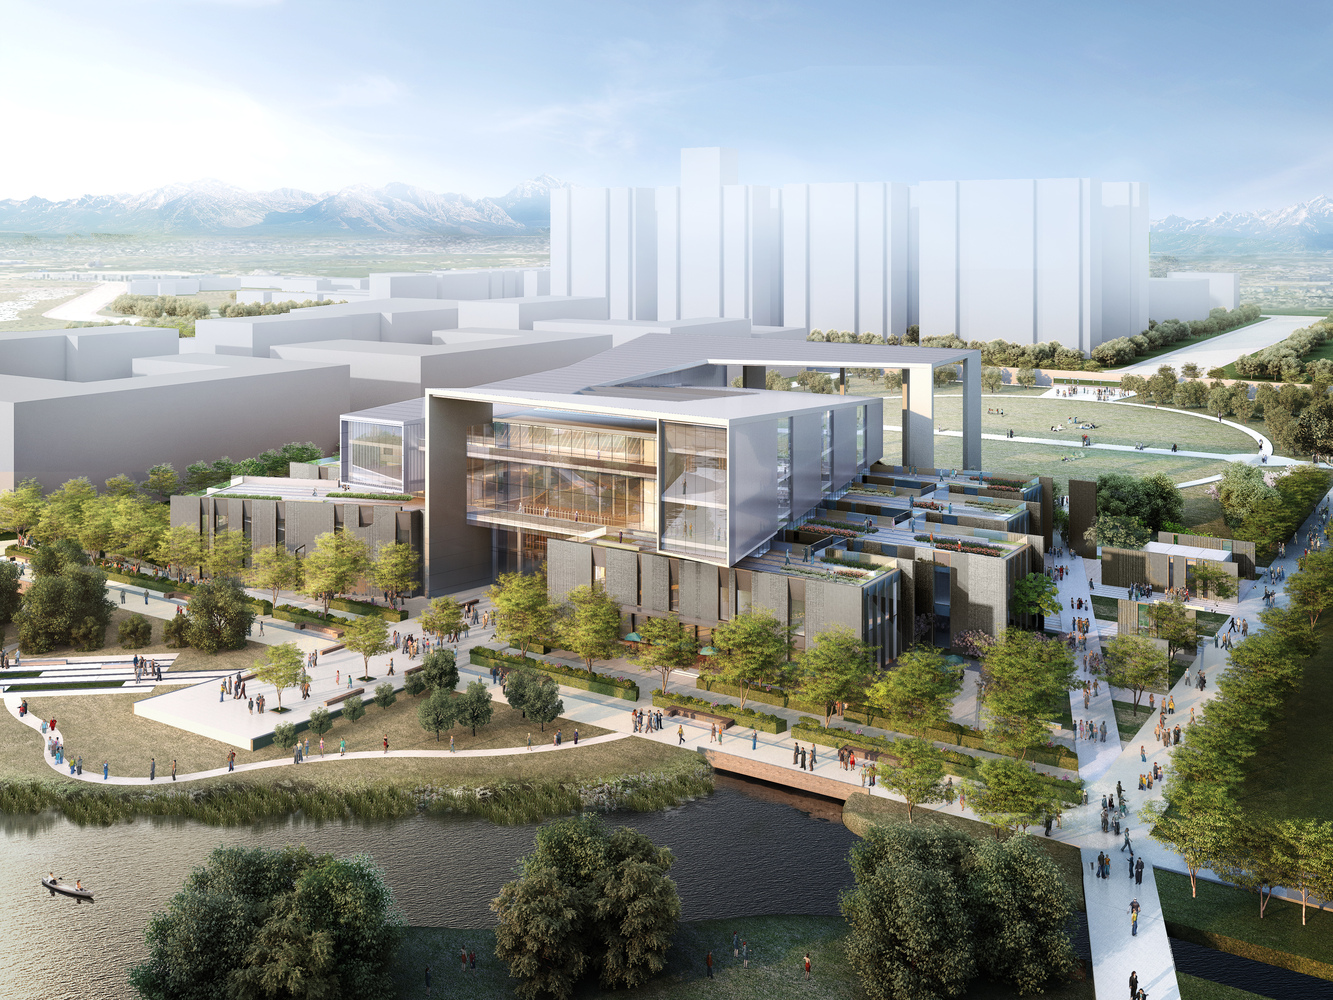 Winning Design Revealed For New College Of Architecture And Design In  China,Courtesy Of Moore